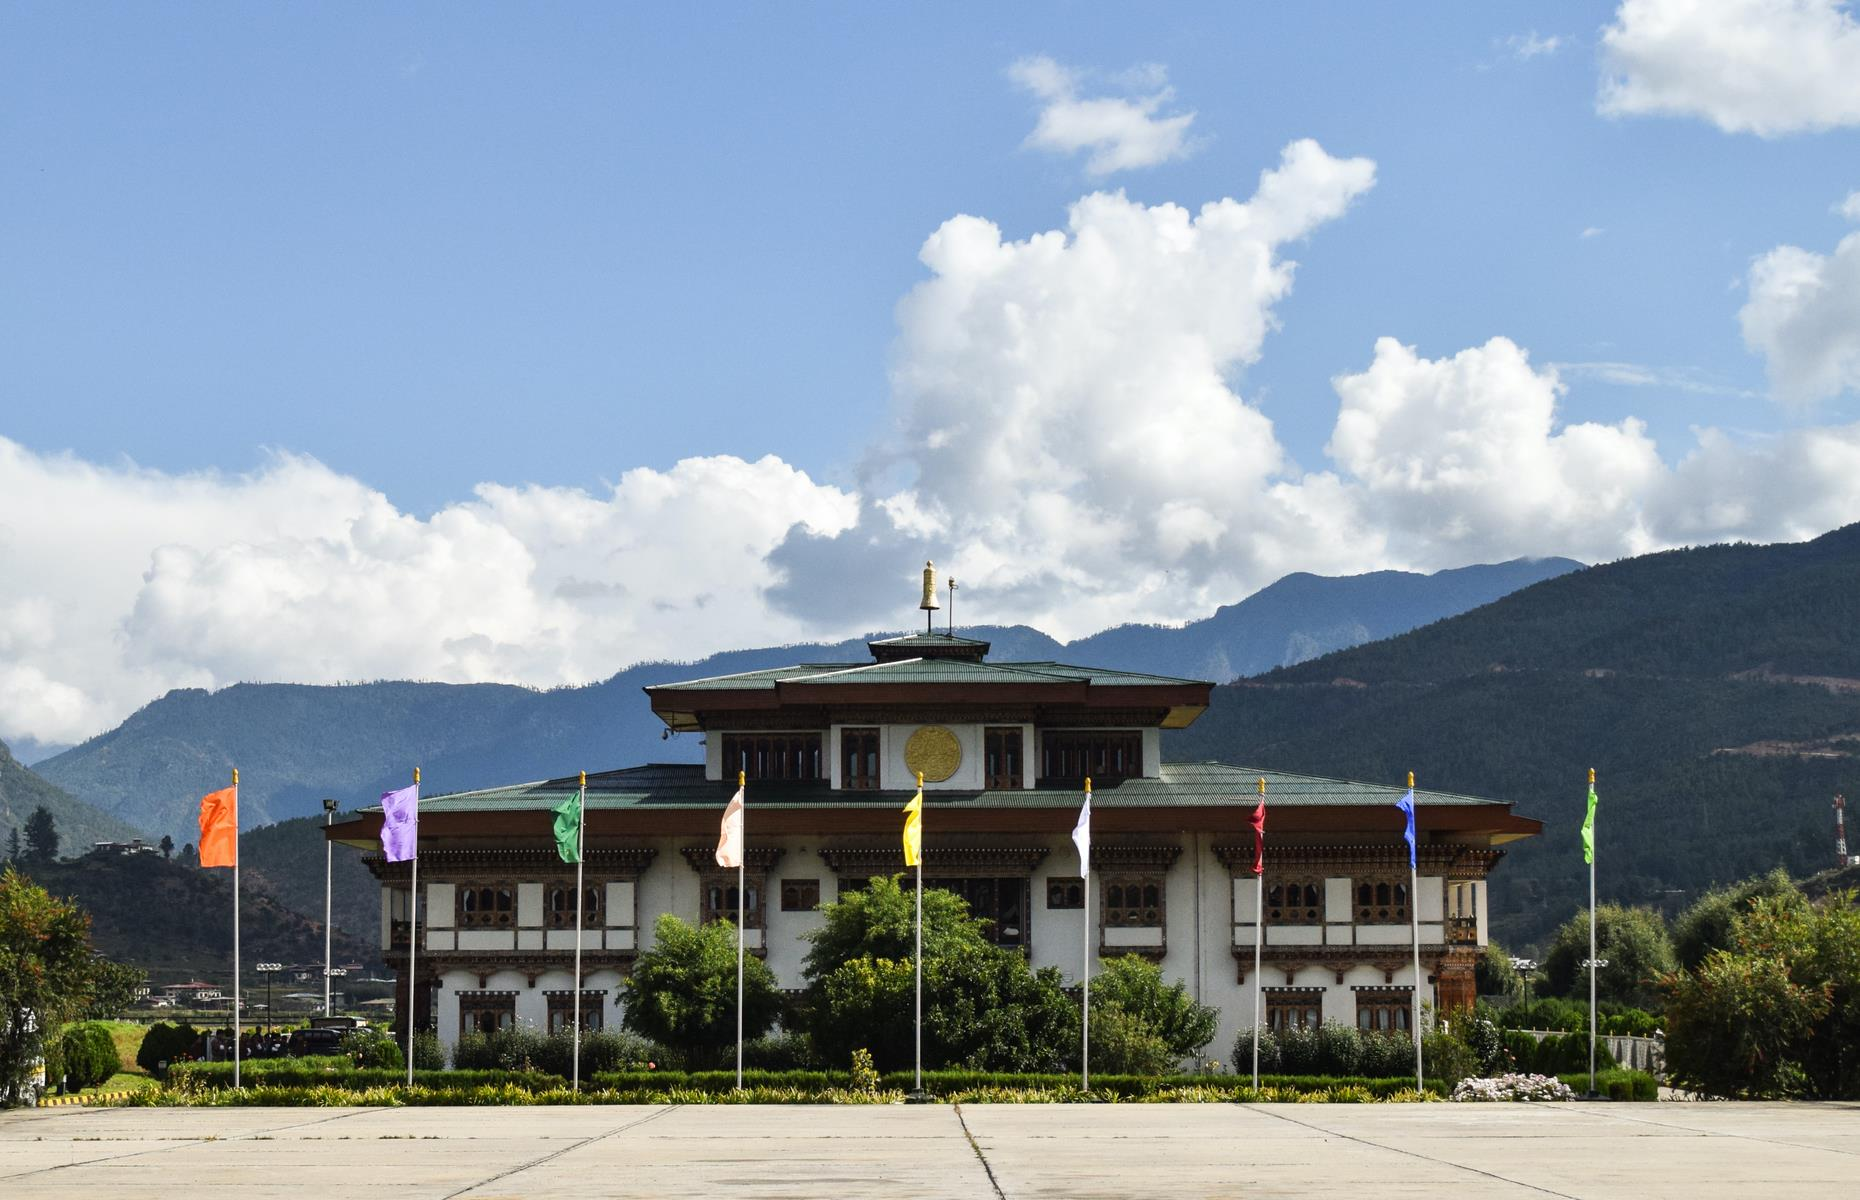 Slide 18 of 44: The treacherous landing, which involves sweeping within feet of the roofs of local houses, means flights are only permitted in daylight. The terminal building is designed in keeping with Bhutan's traditional architecture and although facilities are minimal, it has a comfortable waiting room adorned with paintings of Bhutan kings past and present.